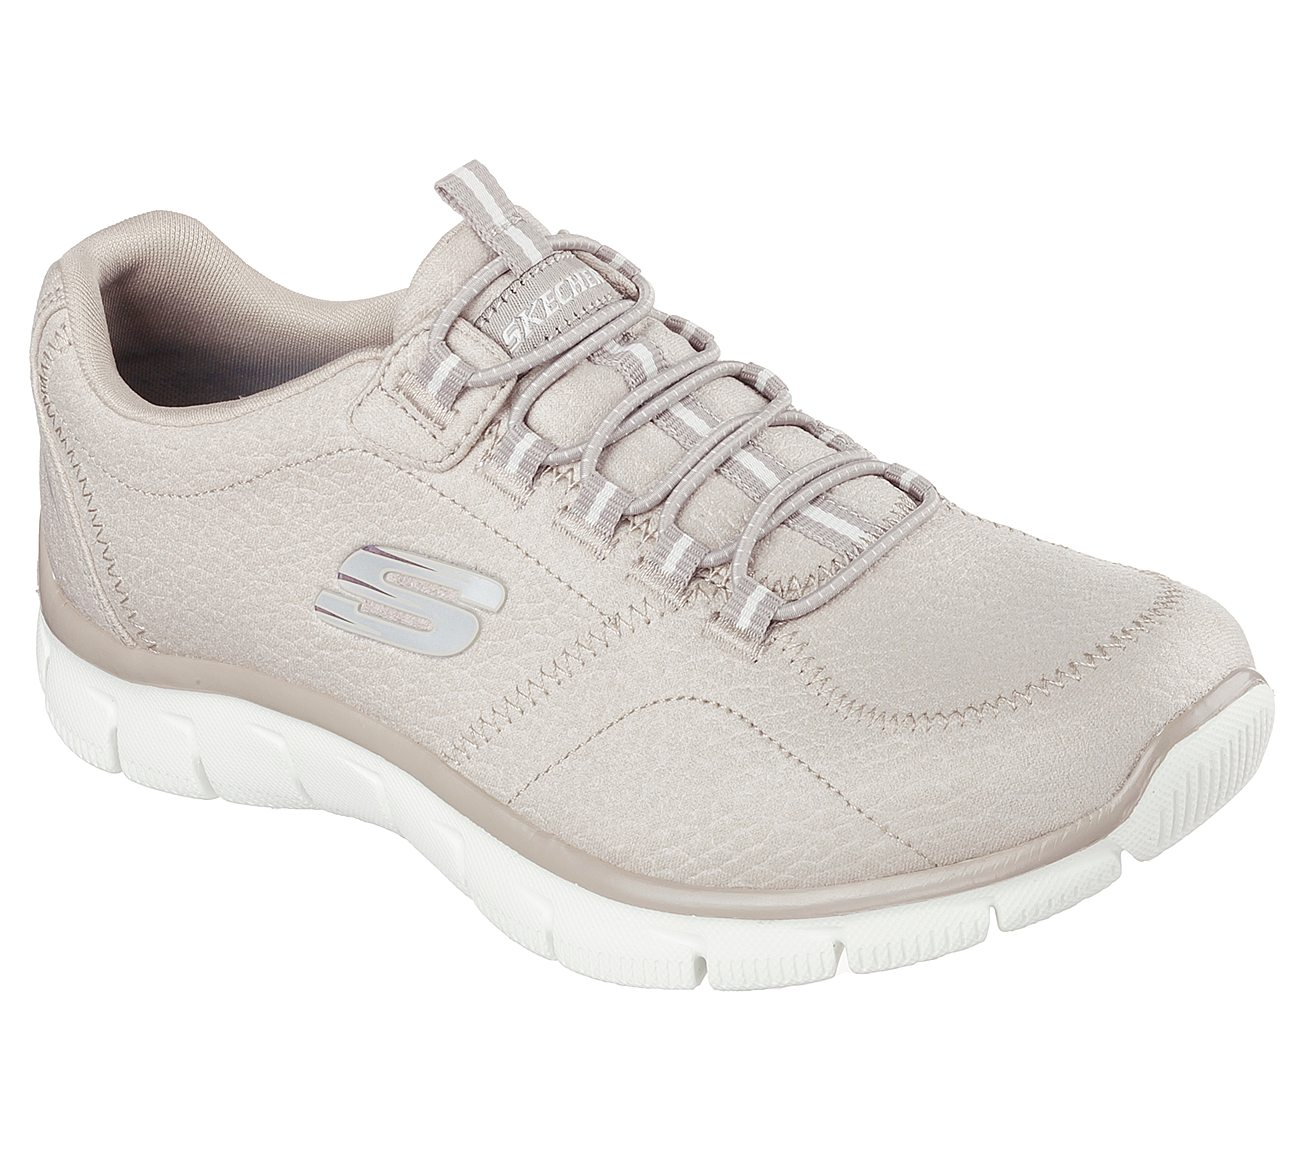 Buy SKECHERS Relaxed Fit: Empire - Take